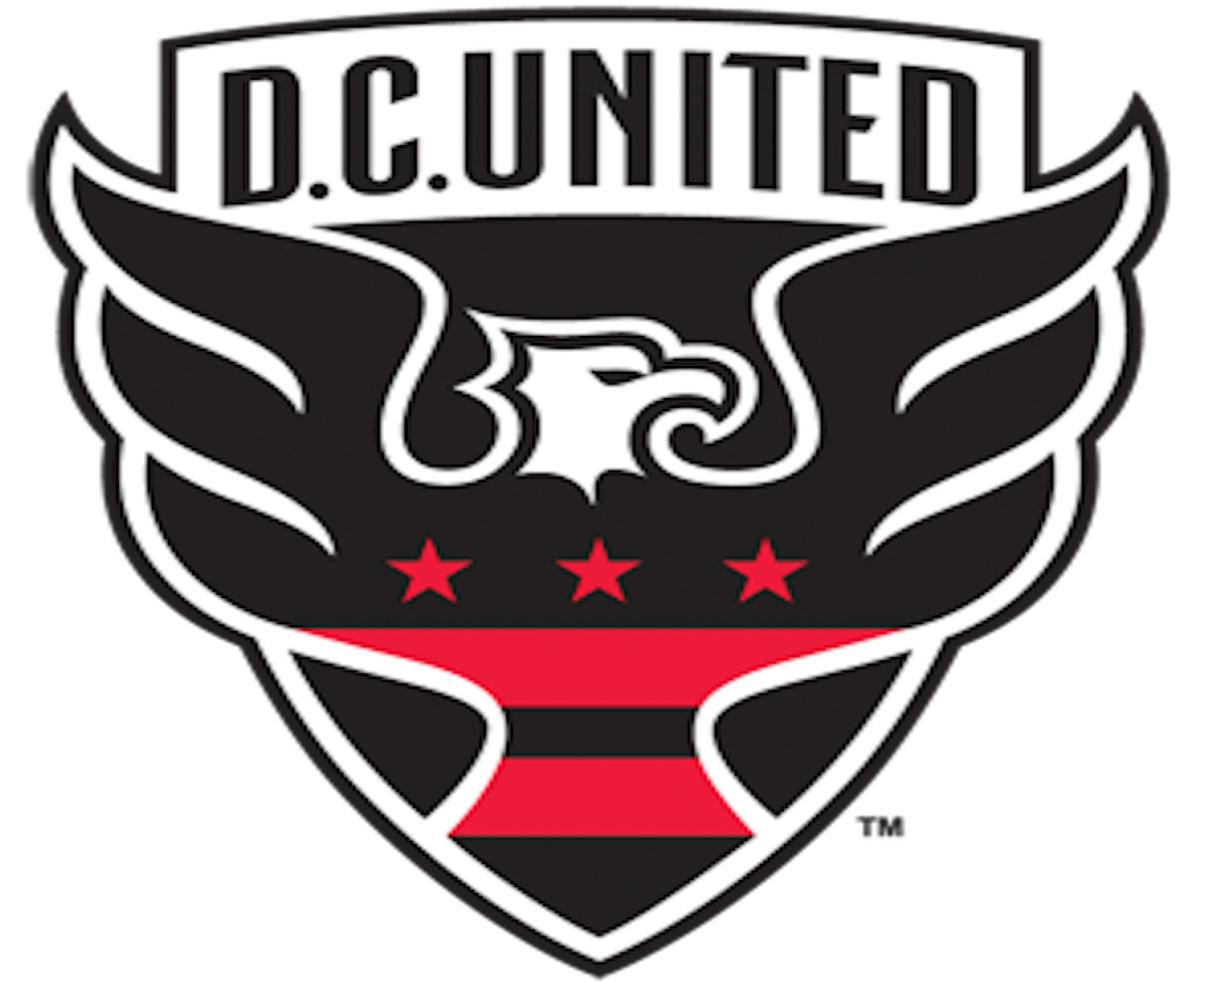 NEW LOCATION ADDED! $248+ for D.C. United Soccer Camp for Ages 5-16 at RFK Stadium, Leesburg, Hagerstown and Sterling! Ball, T-shirt & Ticket Voucher for D.C. United Match included! (Up to $70 Off)